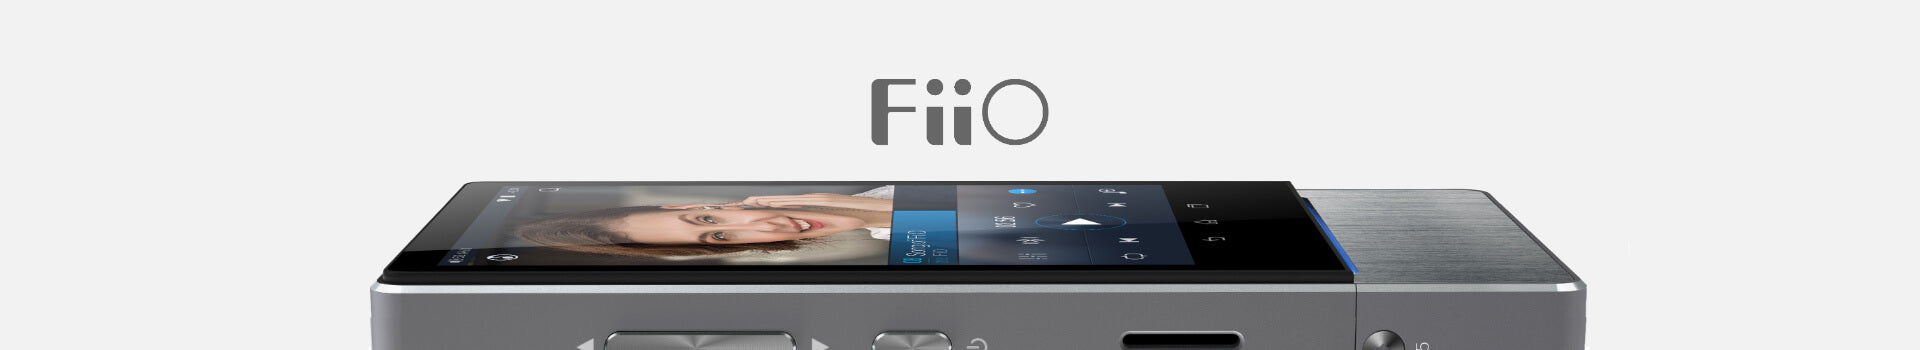 FiiO | Trusted by 40,000+ Customers! | The Audio Tailor